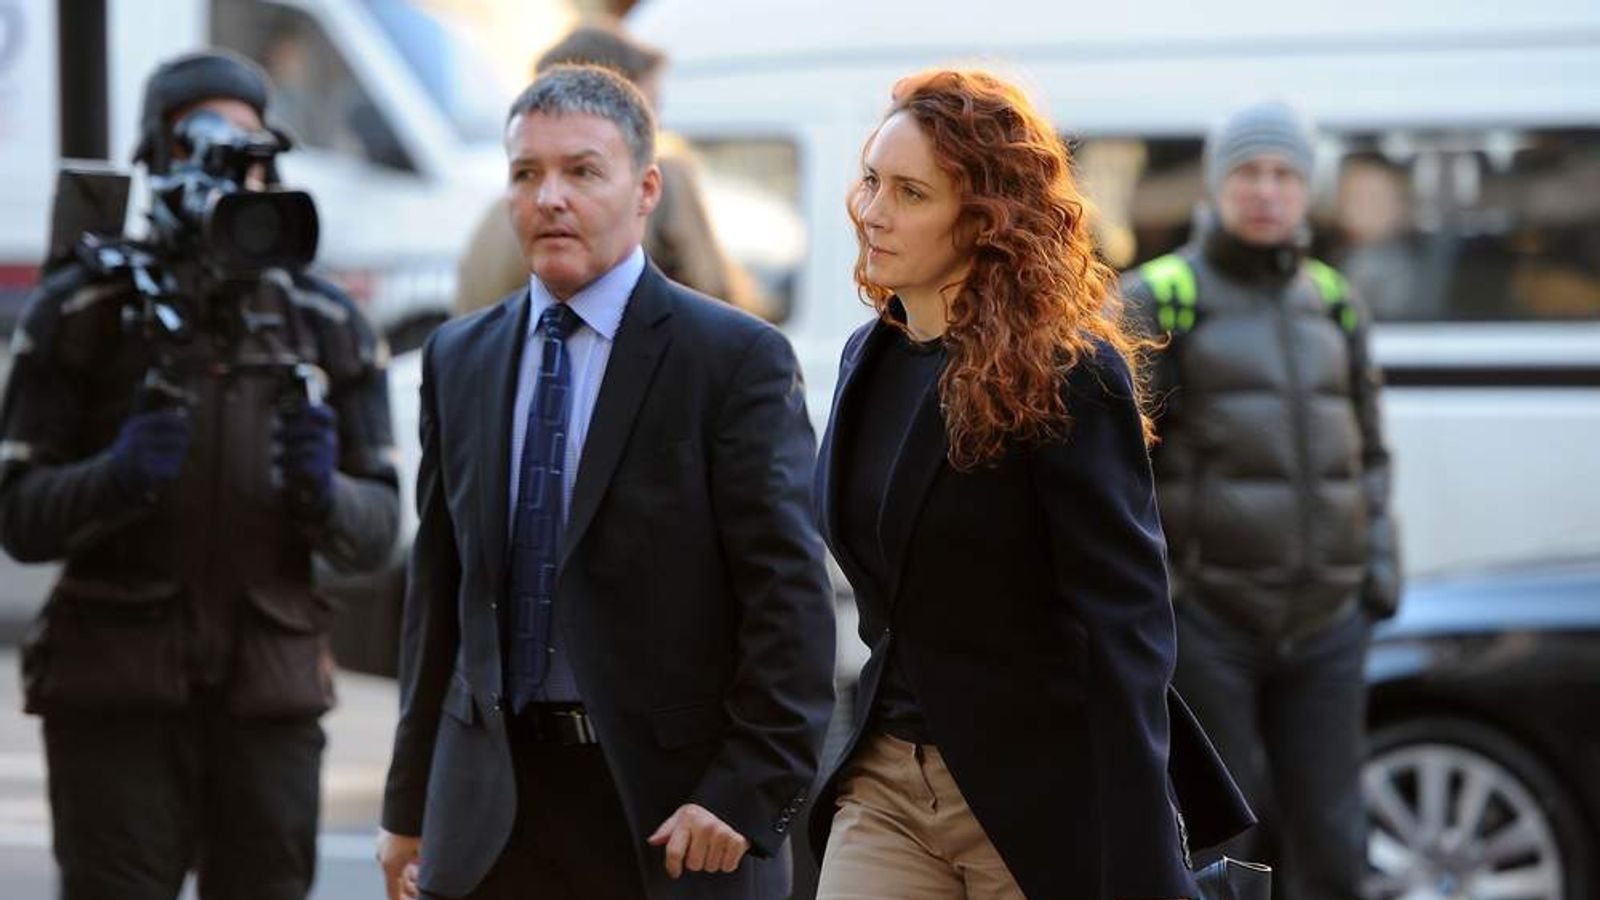 Rebekah Brooks arrives at court